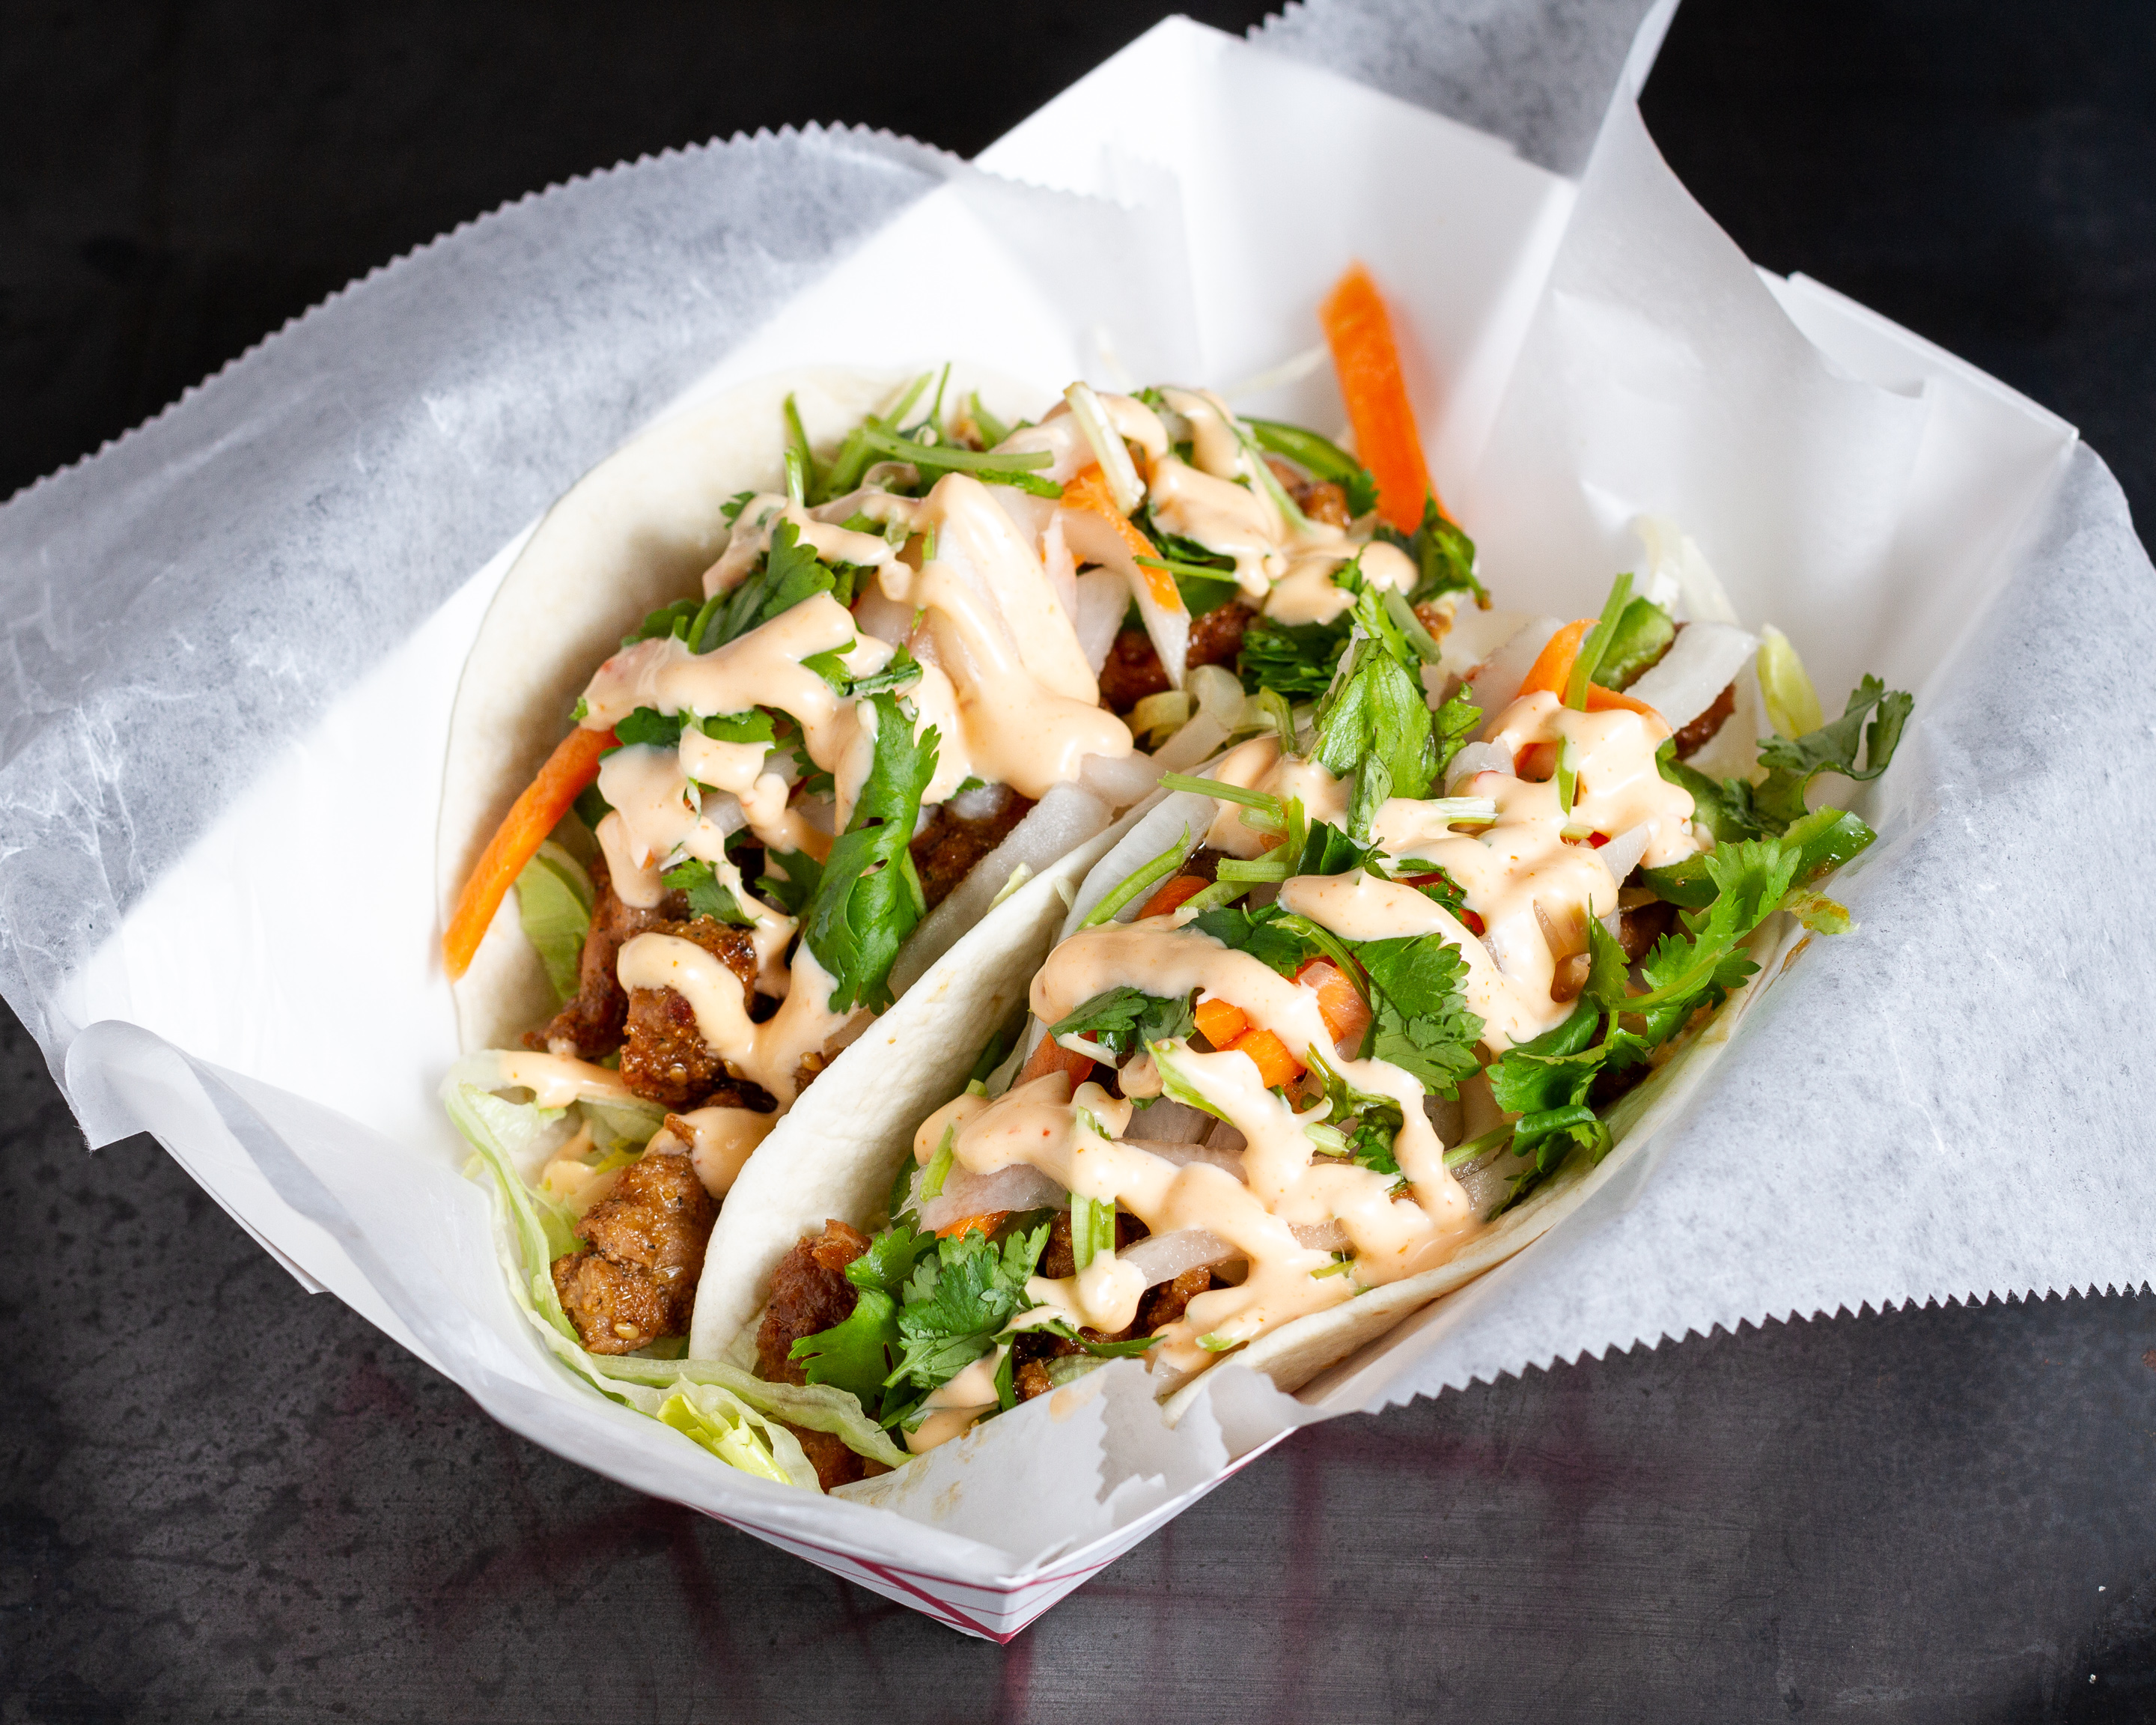 TheRedBoat_LemongrassChickenTacos_2880x2